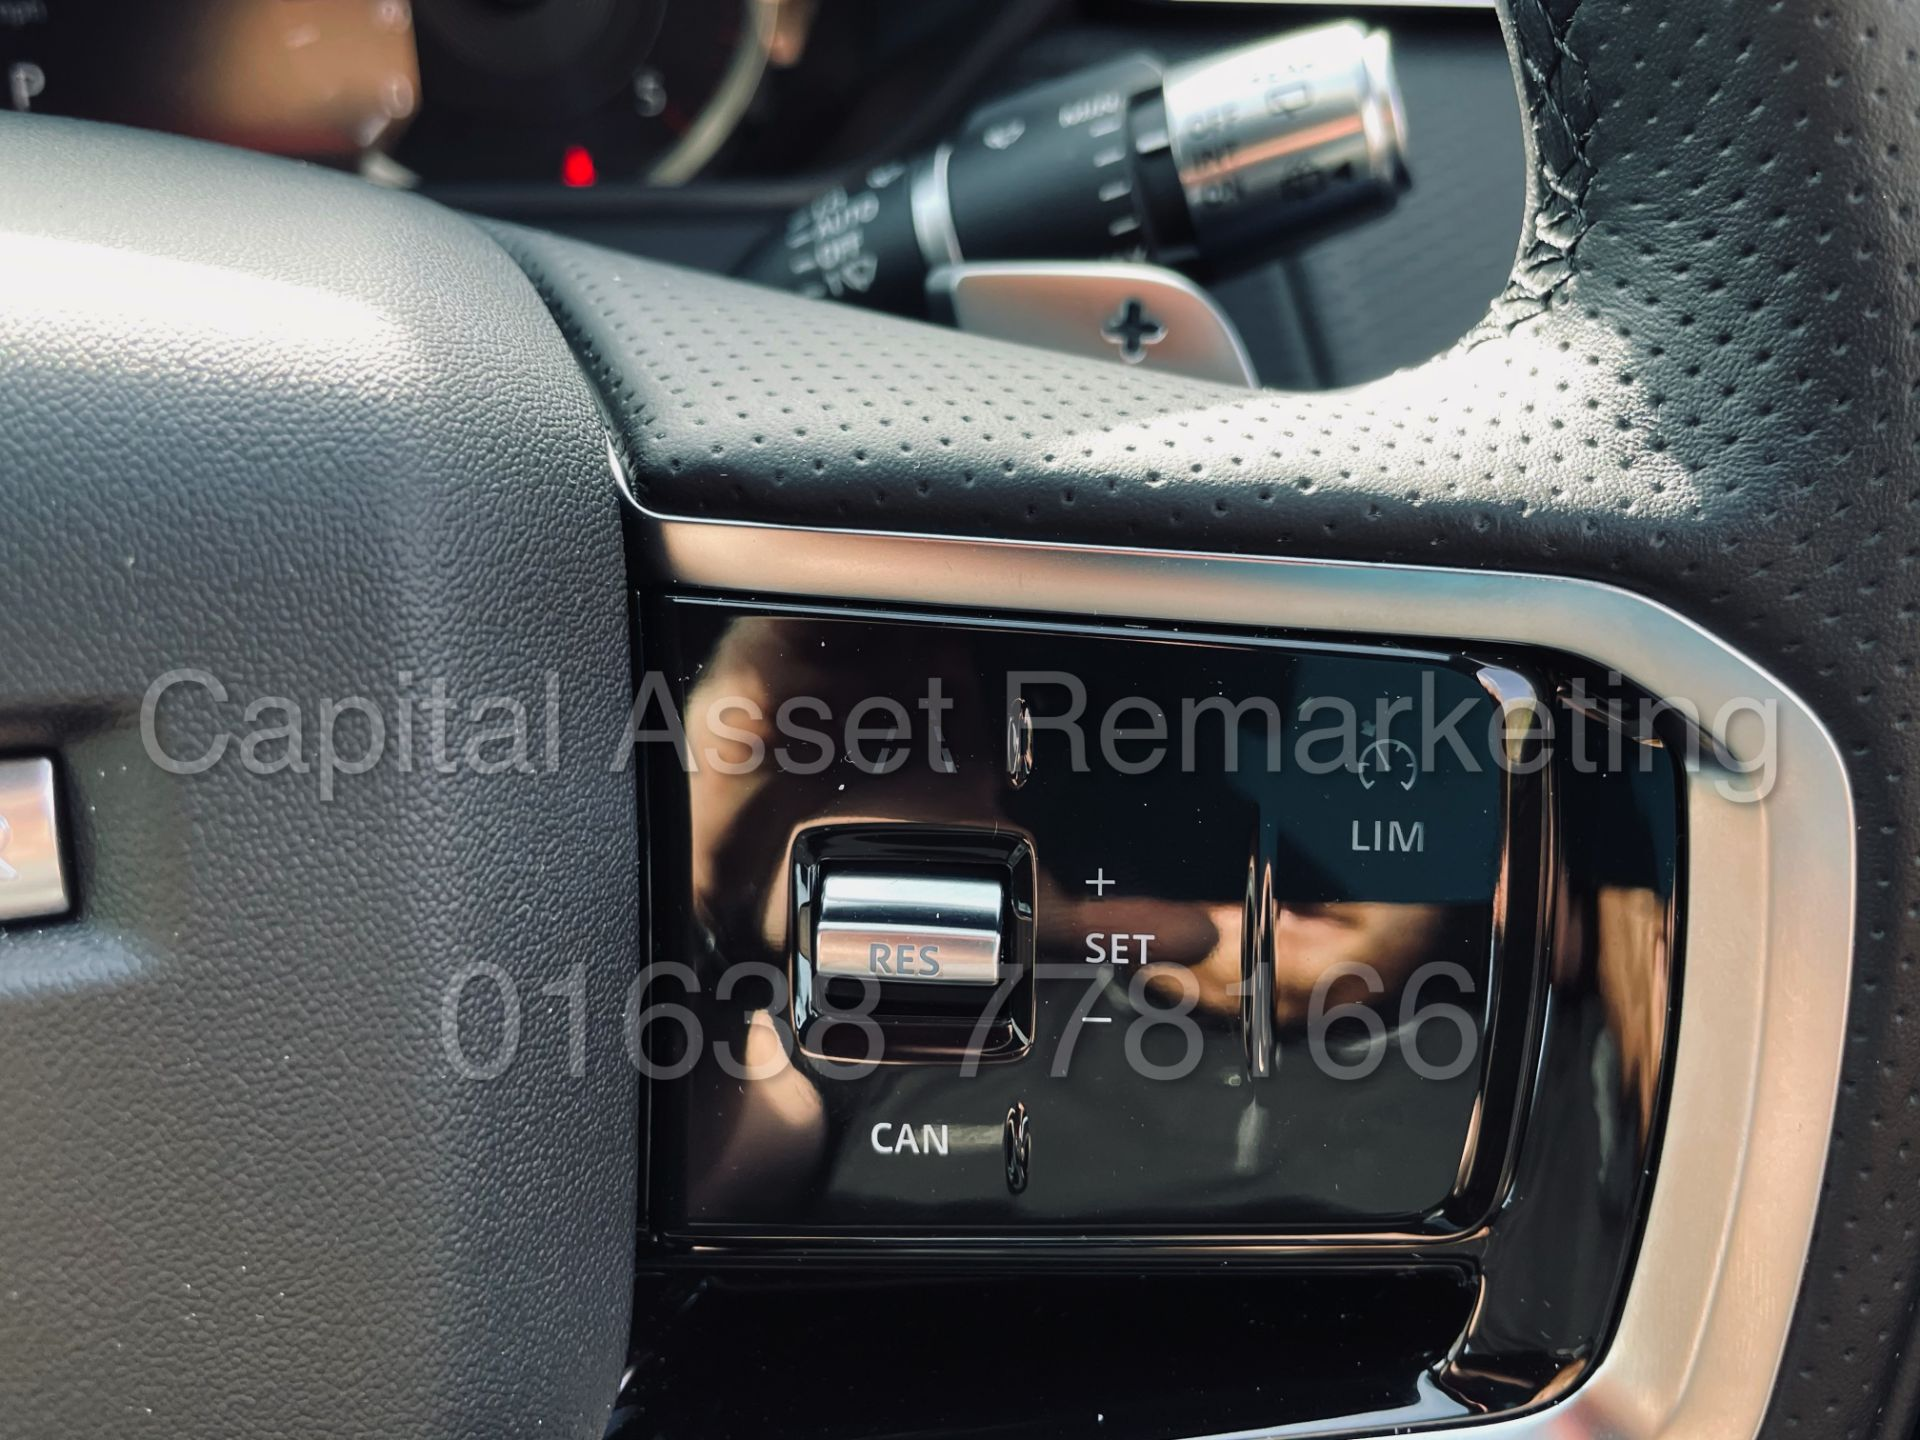 (On Sale) RANGE ROVER VELAR *R-DYNAMIC* SUV (2021) *8 SPEED AUTO - LEATHER* (DELIVERY MILES) - Image 49 of 50